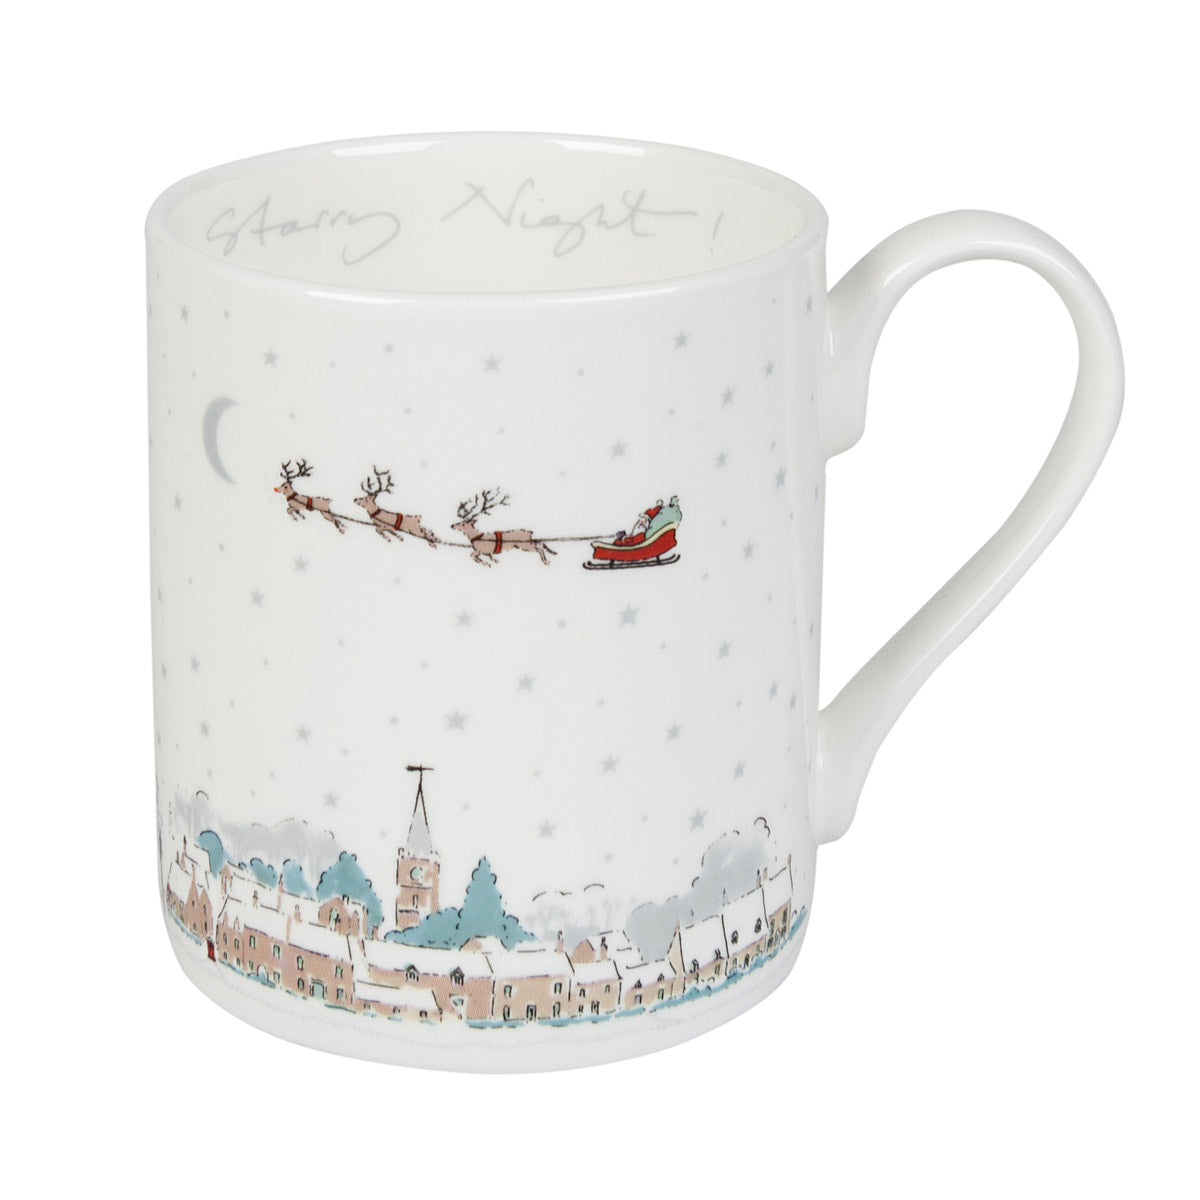 Starry Night Village Scene Mug